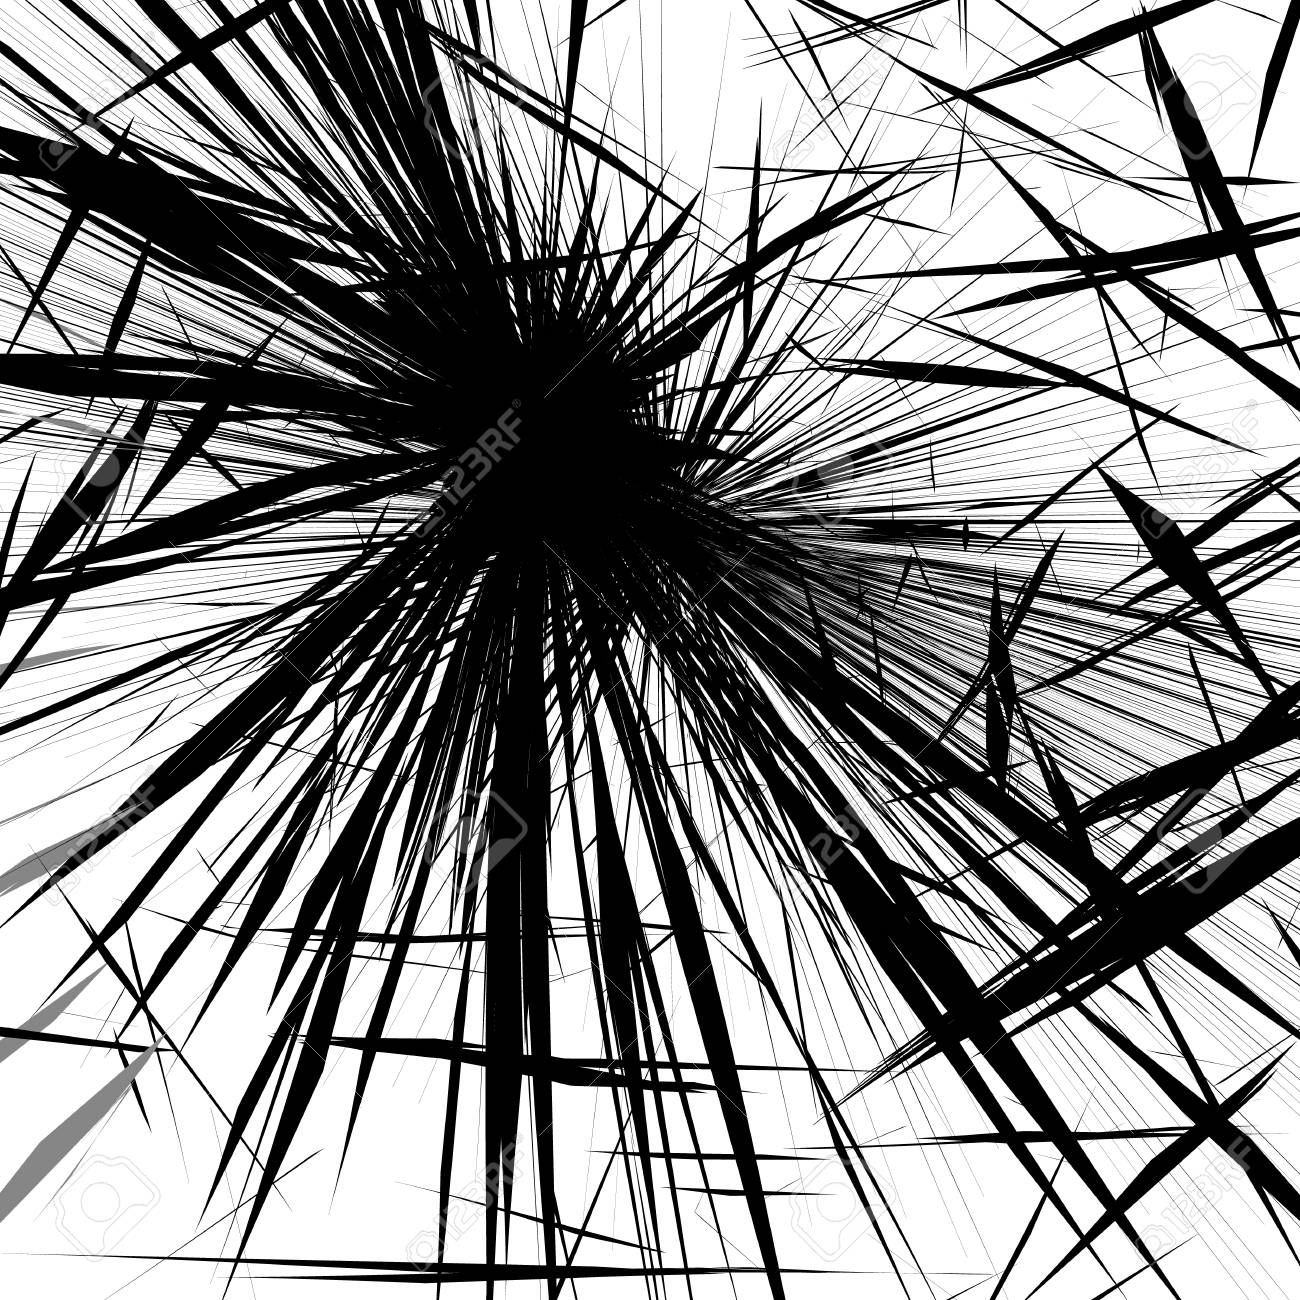 Rough edgy texture of random distorted shapes black and white